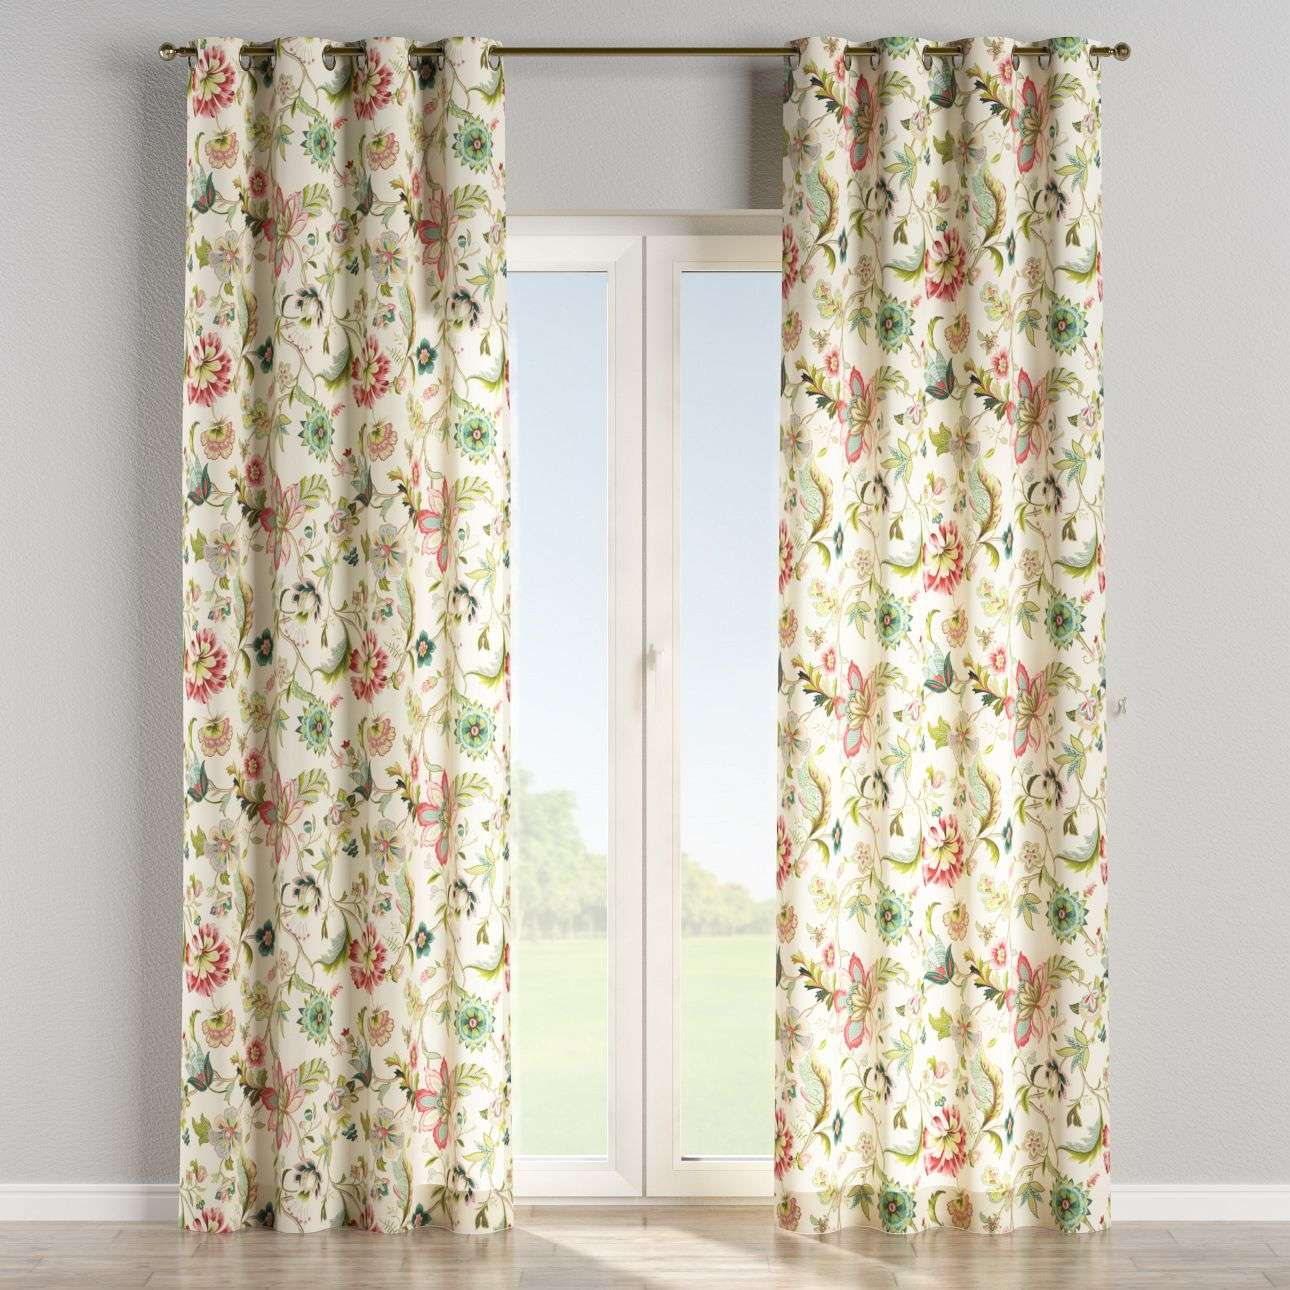 Eyelet curtains 130 × 260 cm (51 × 102 inch) in collection Londres, fabric: 122-00